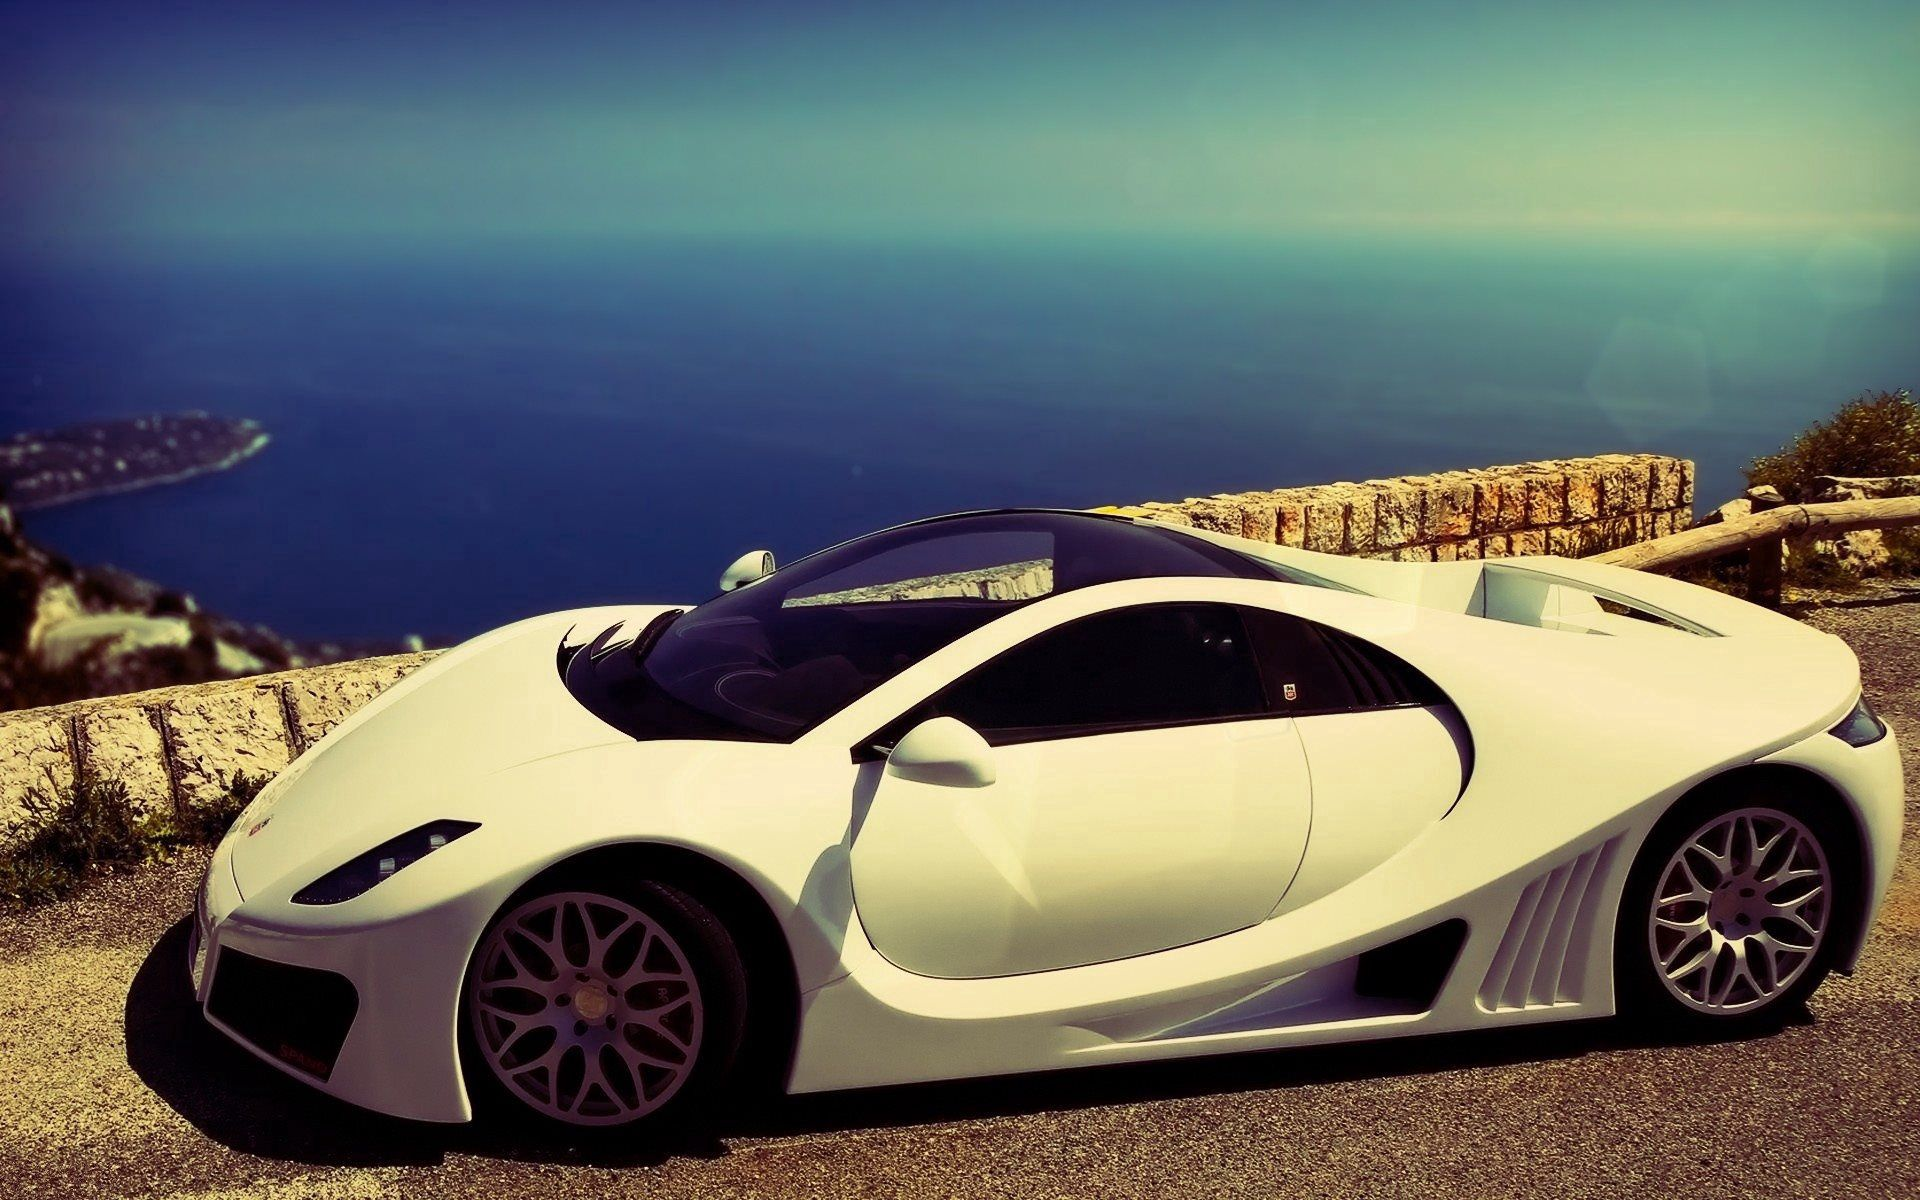 93515 download wallpaper Cars, Gta Spano, Auto, Side View, Supercar, Spain screensavers and pictures for free